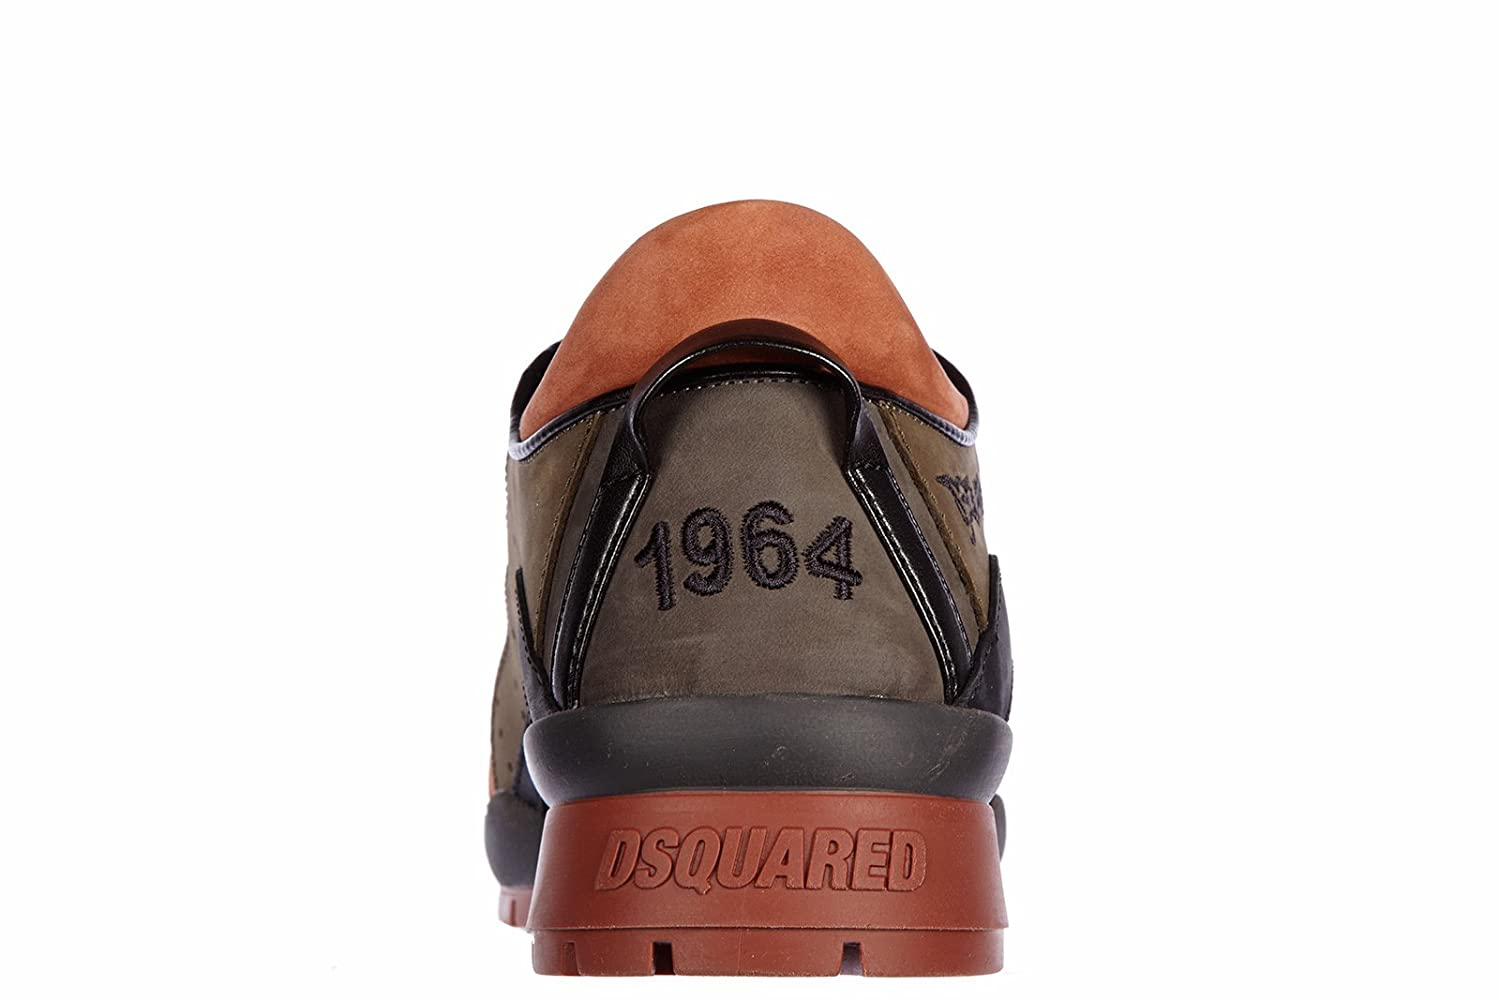 Amazon.com: DSQUARED2 Mens Shoes Leather Trainers Sneakers 551 Nabuk Brown: Shoes